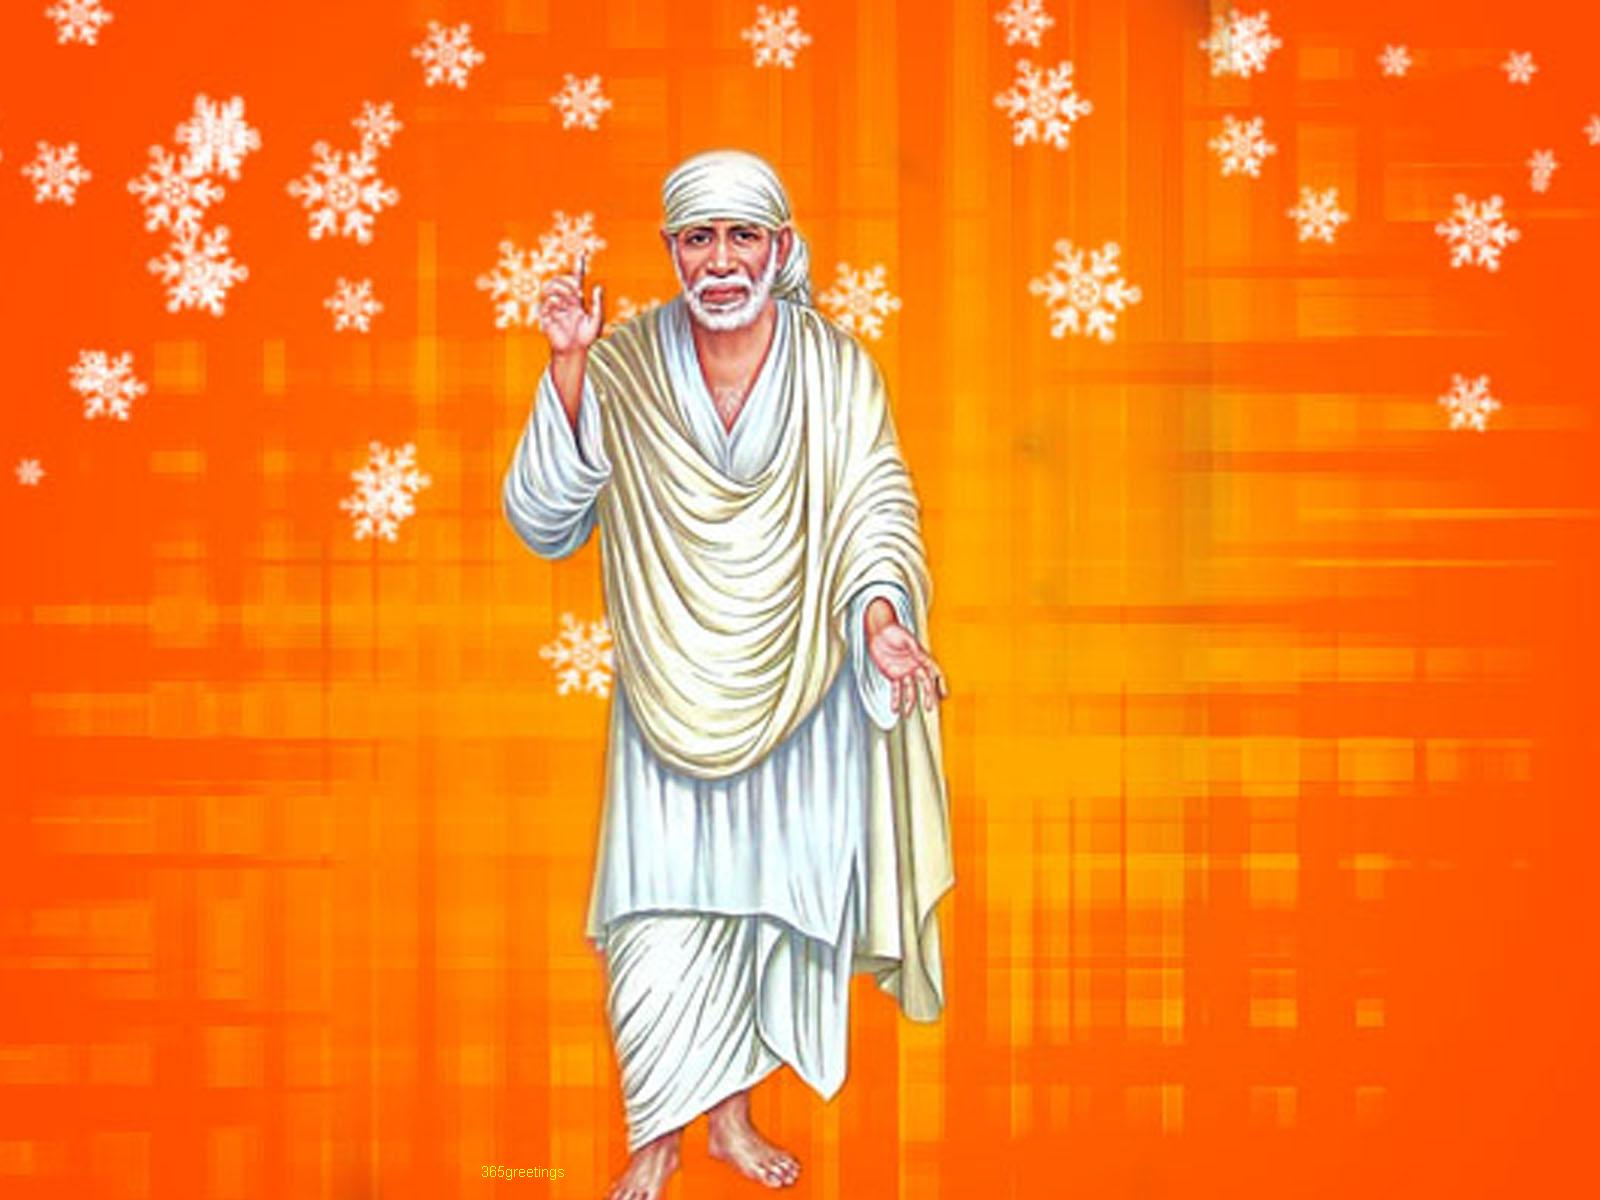 Hd wallpaper sai baba - Sai Baba Wallpaper For Desktop